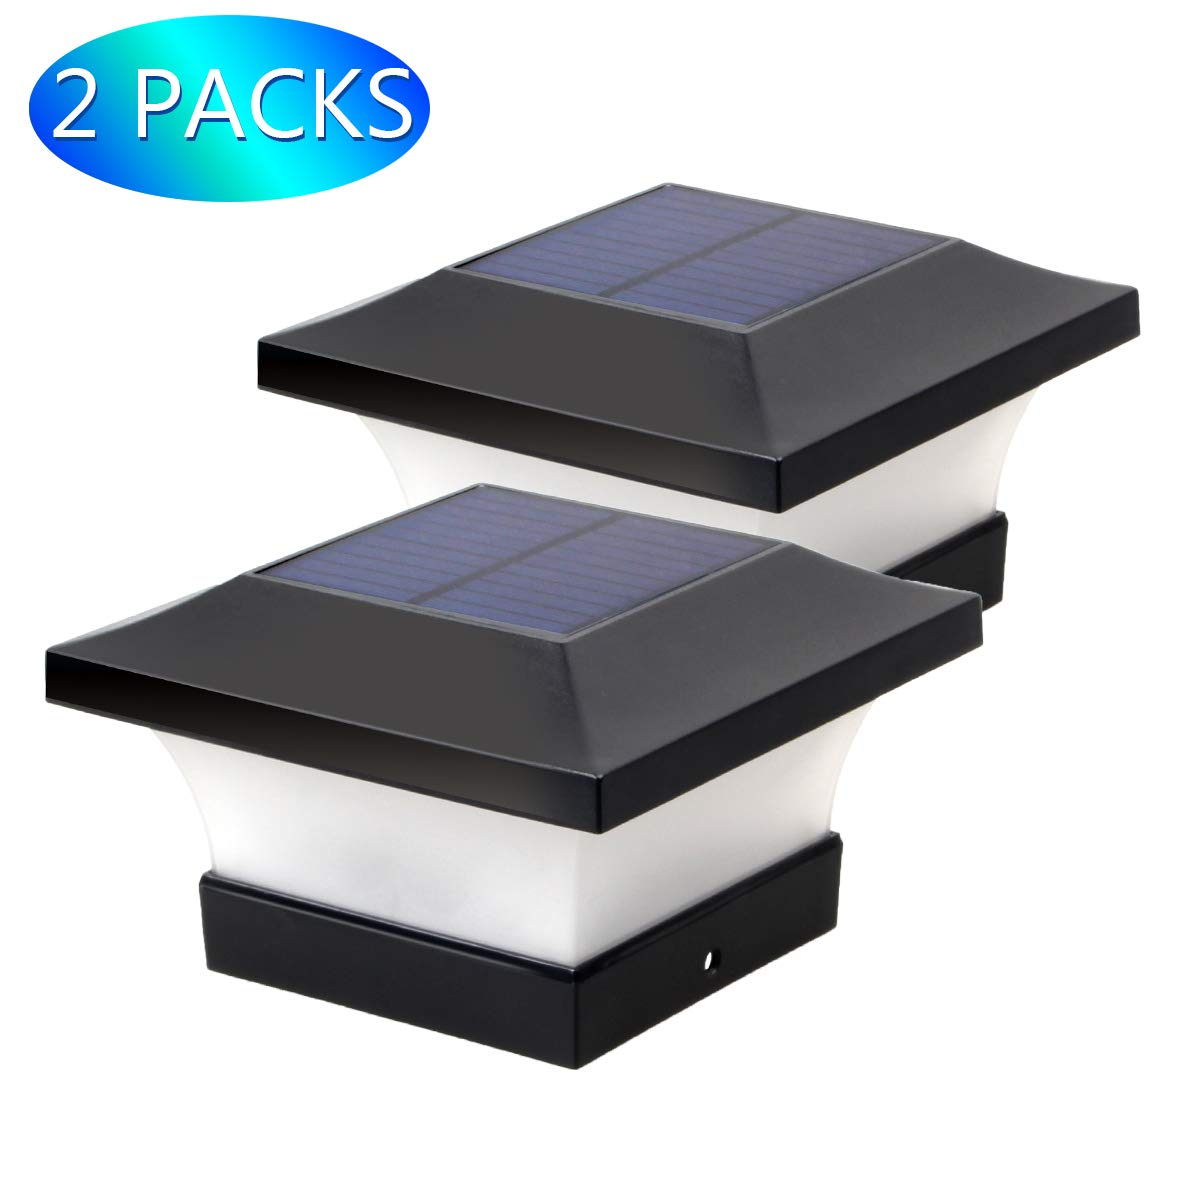 Solar Post Lights Outdoor, Waterproof LED Post Cap Lights for 4x4 Wooden Posts, Square Black Landscape Post Lamp for Deck, Patio, Fence (White Light 6000K) by Yuan Xi